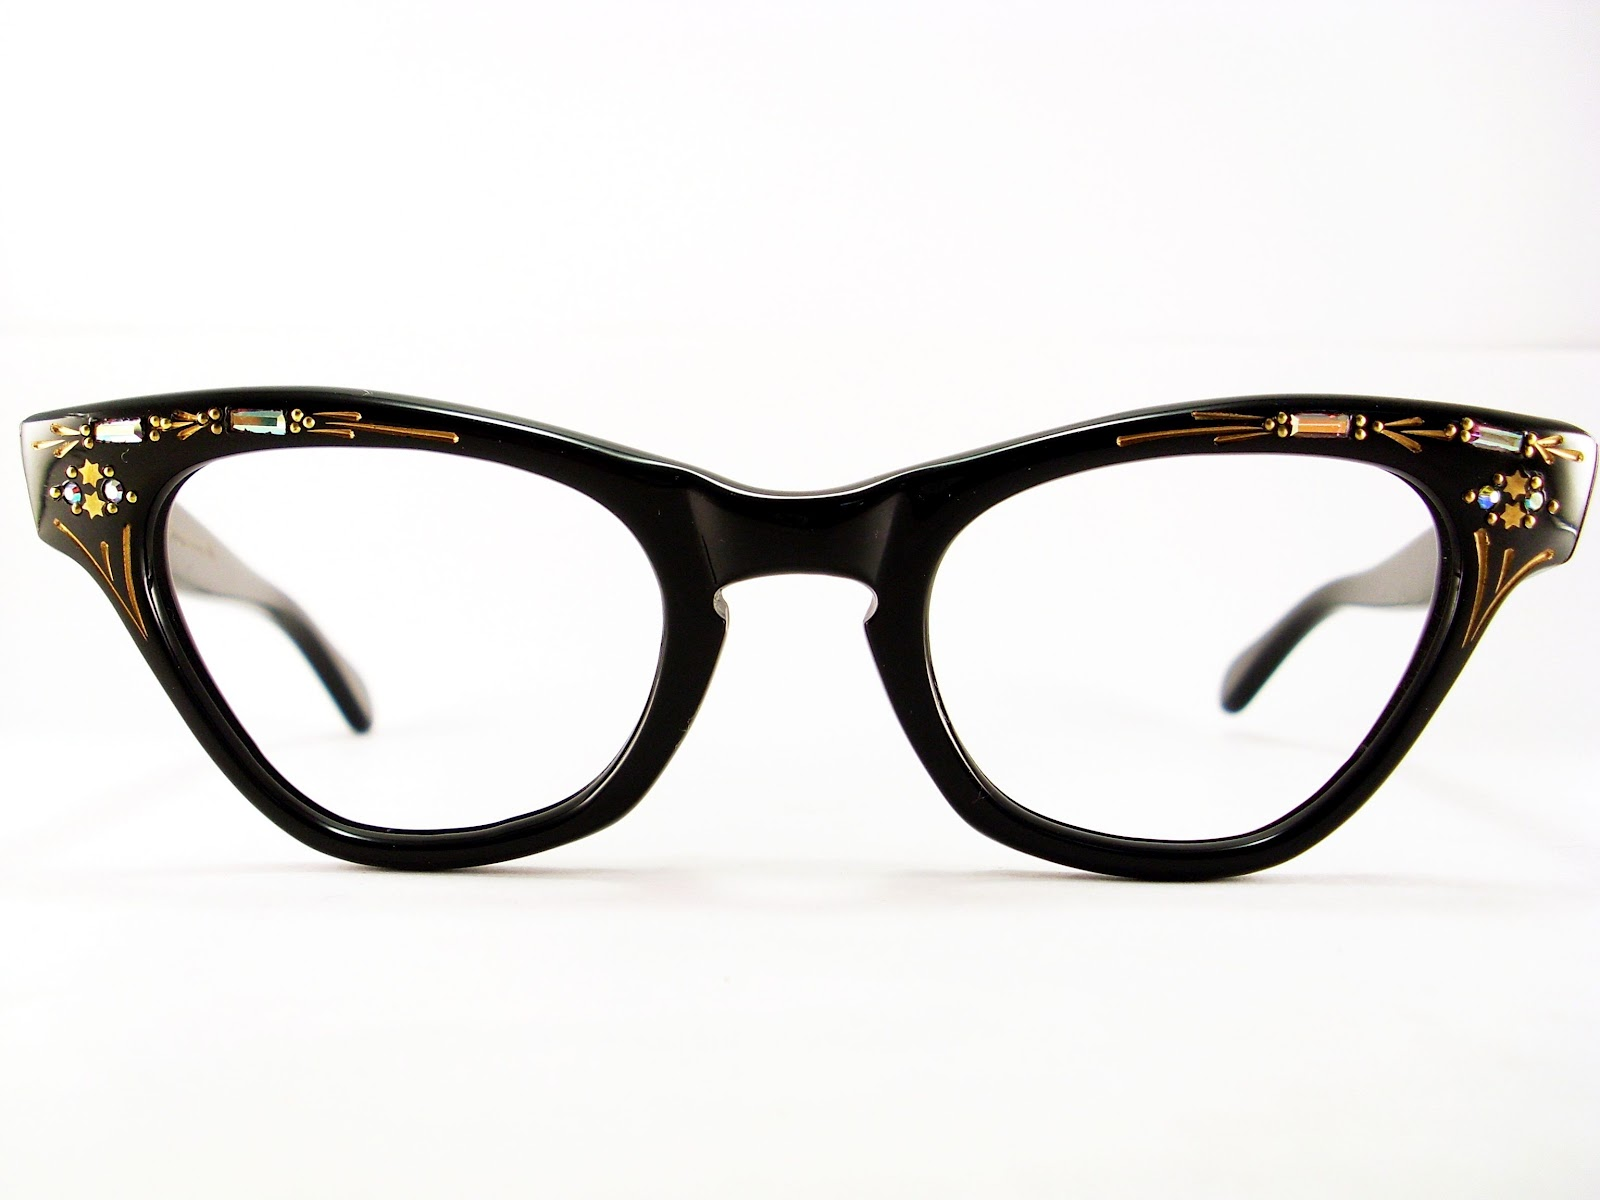 Eyeglass Frame Latest : Vintage Eyeglasses Frames Eyewear Sunglasses 50S: CAT EYE ...